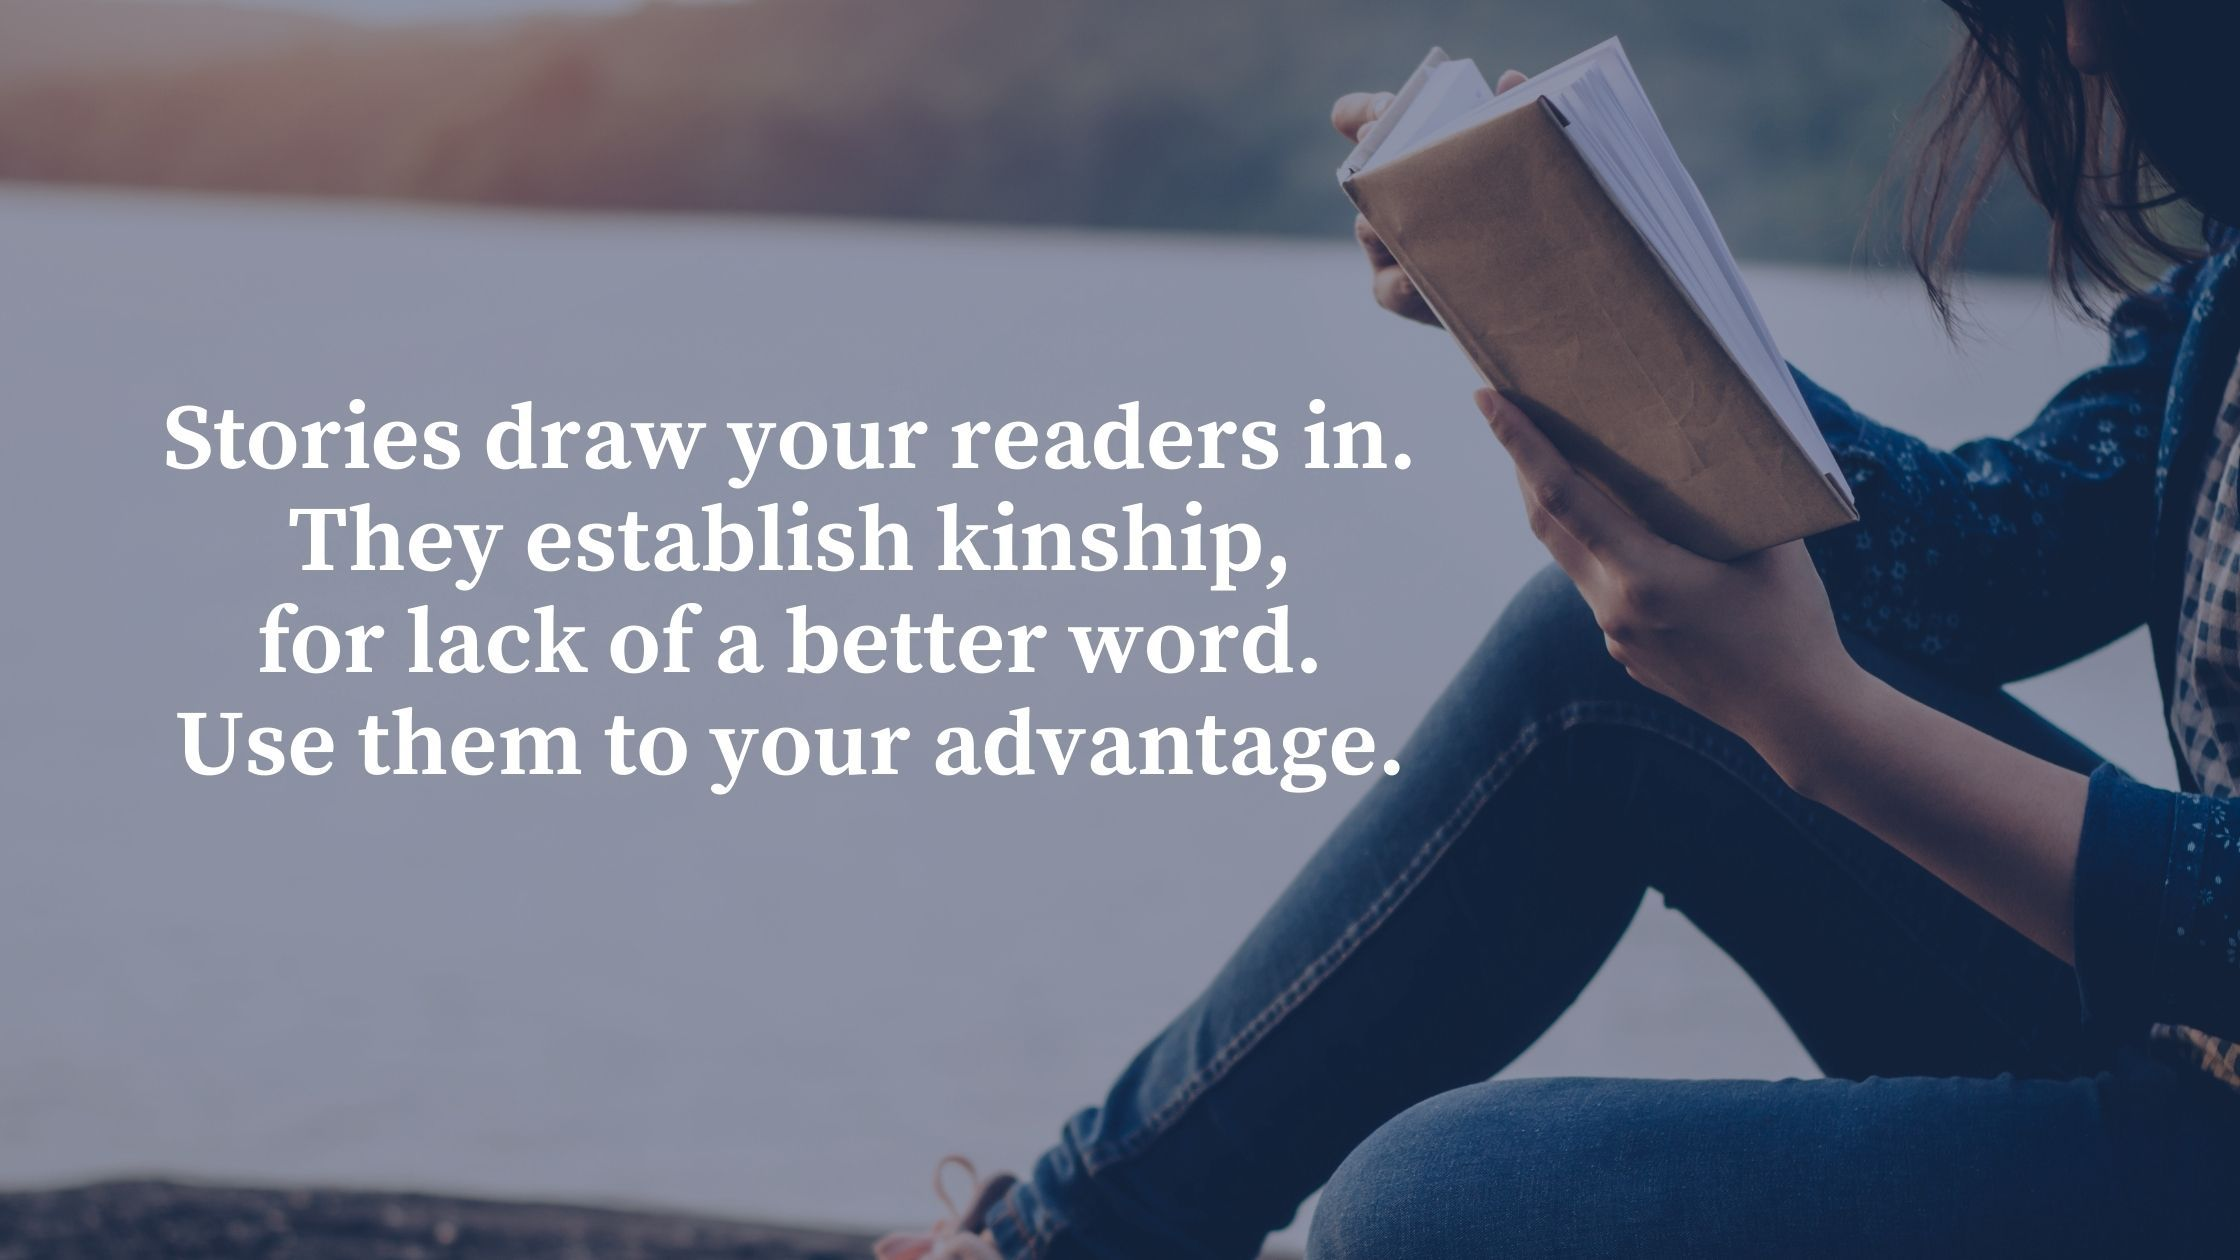 Stories draw your readers in